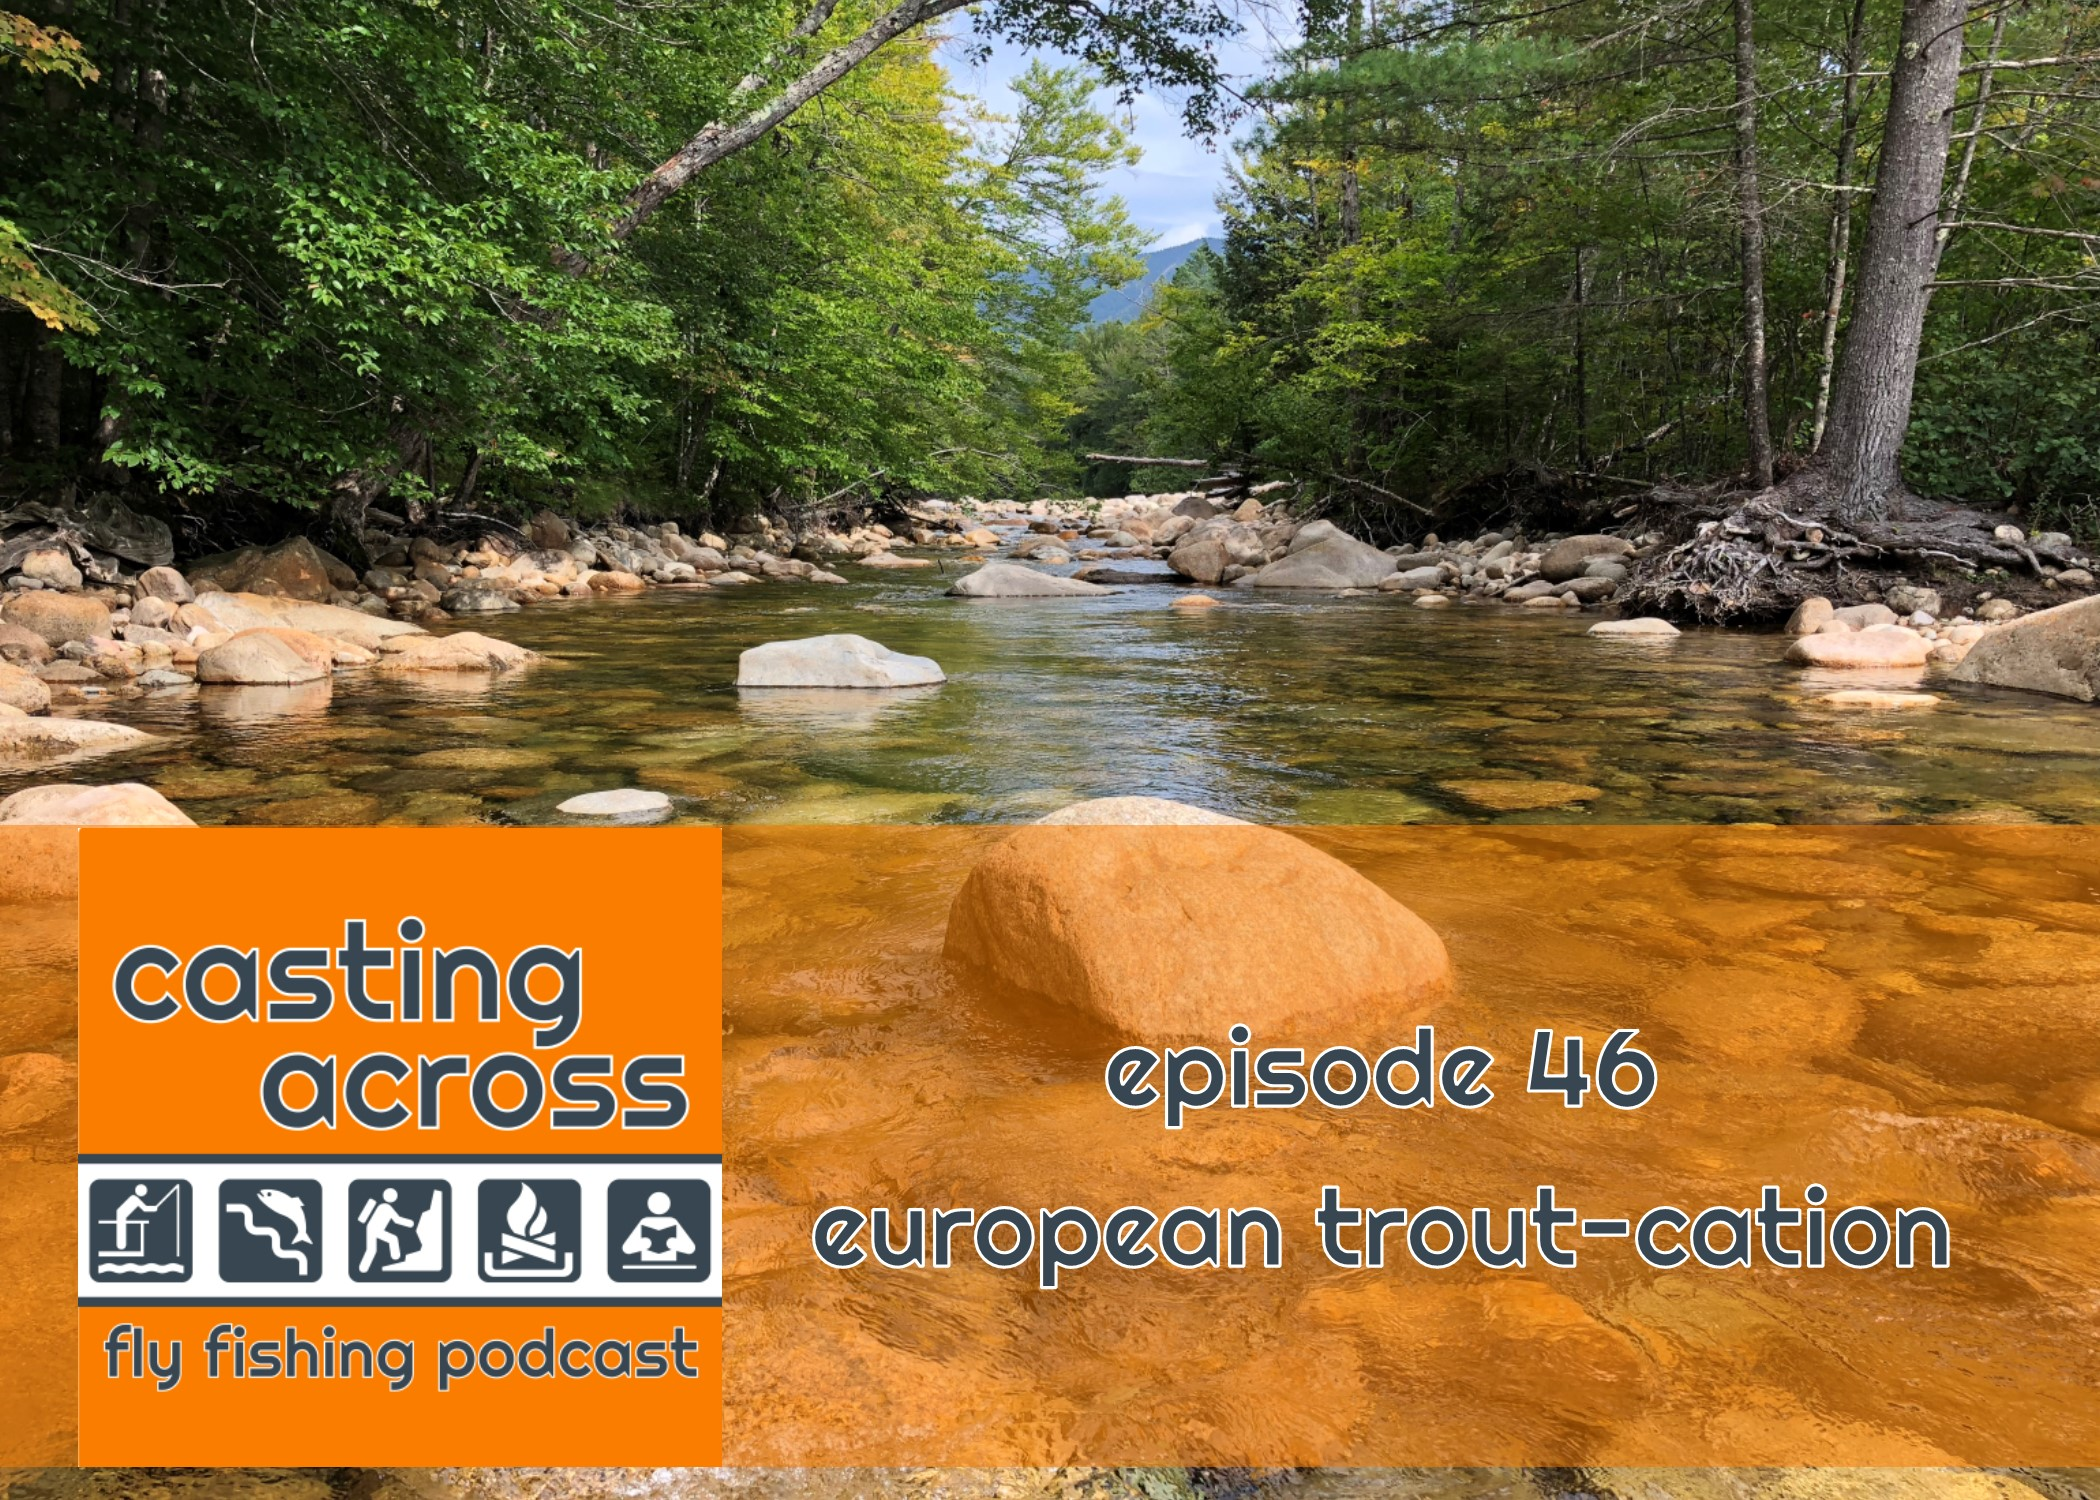 Podcast Ep. 46: European Trout-cation - Casting Across